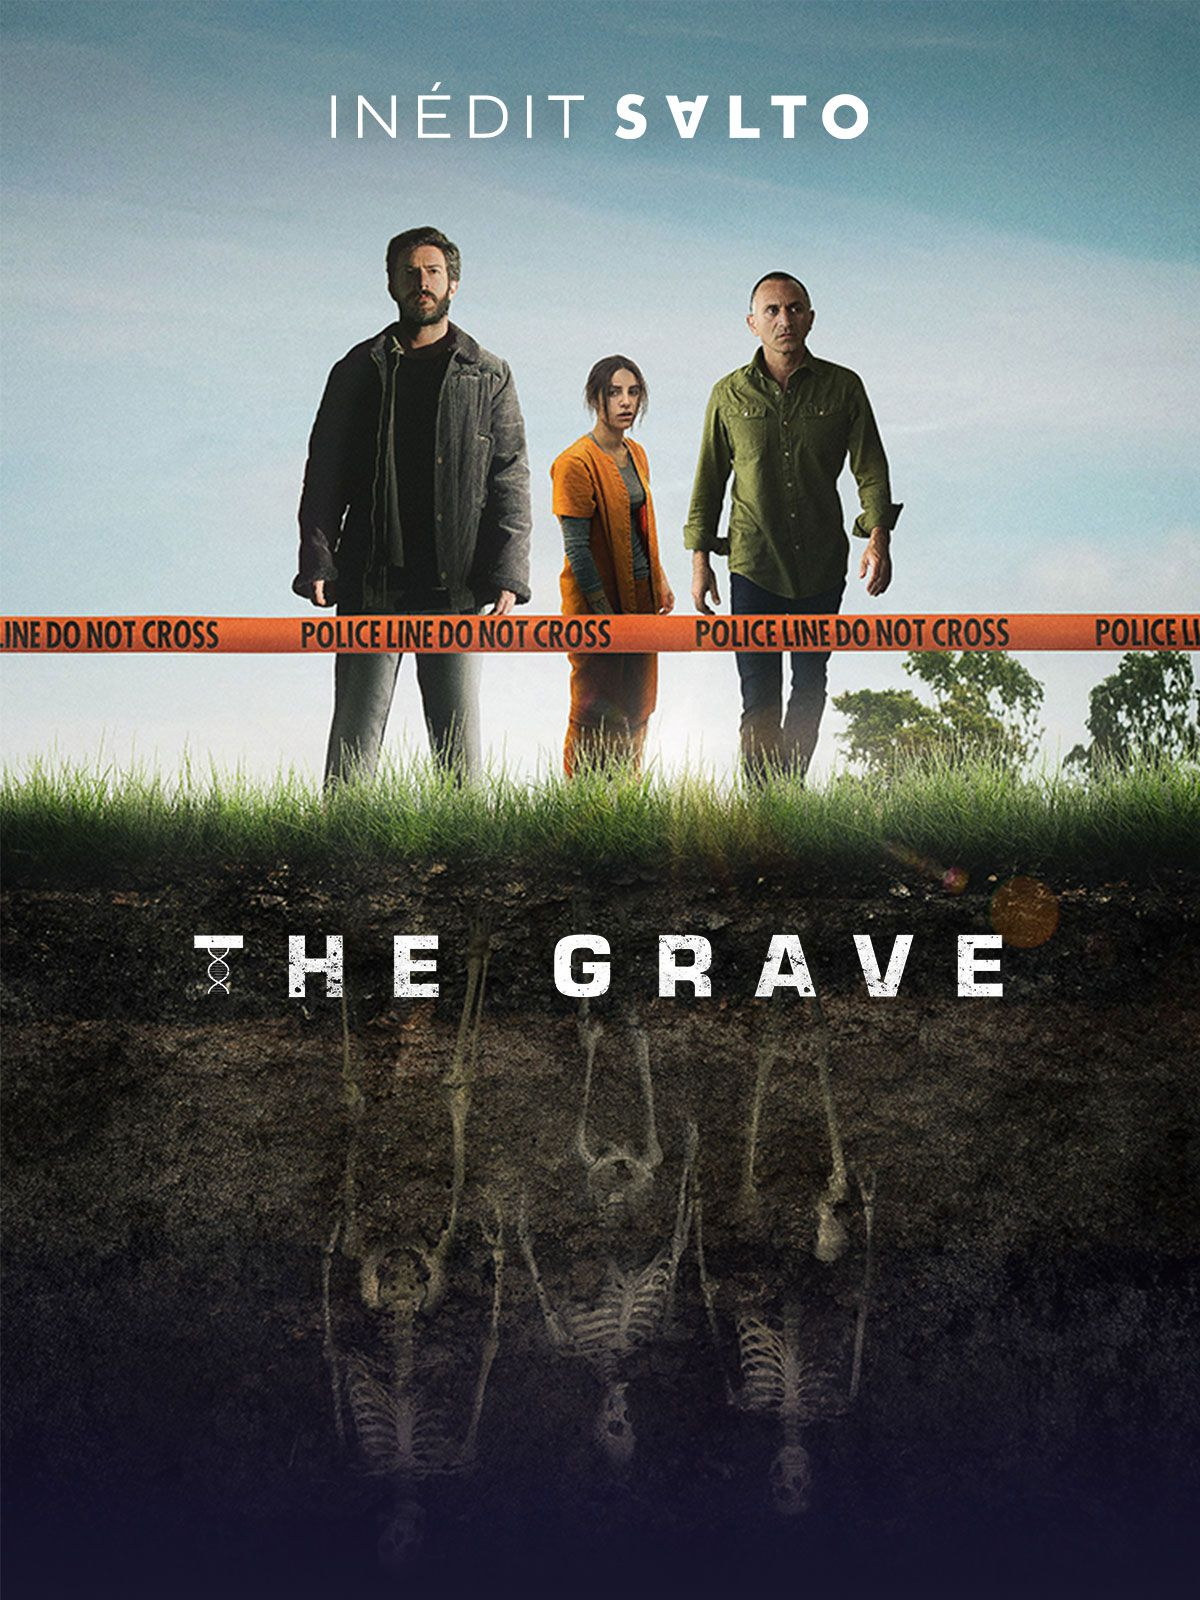 The Grave - Série (2021) streaming VF gratuit complet